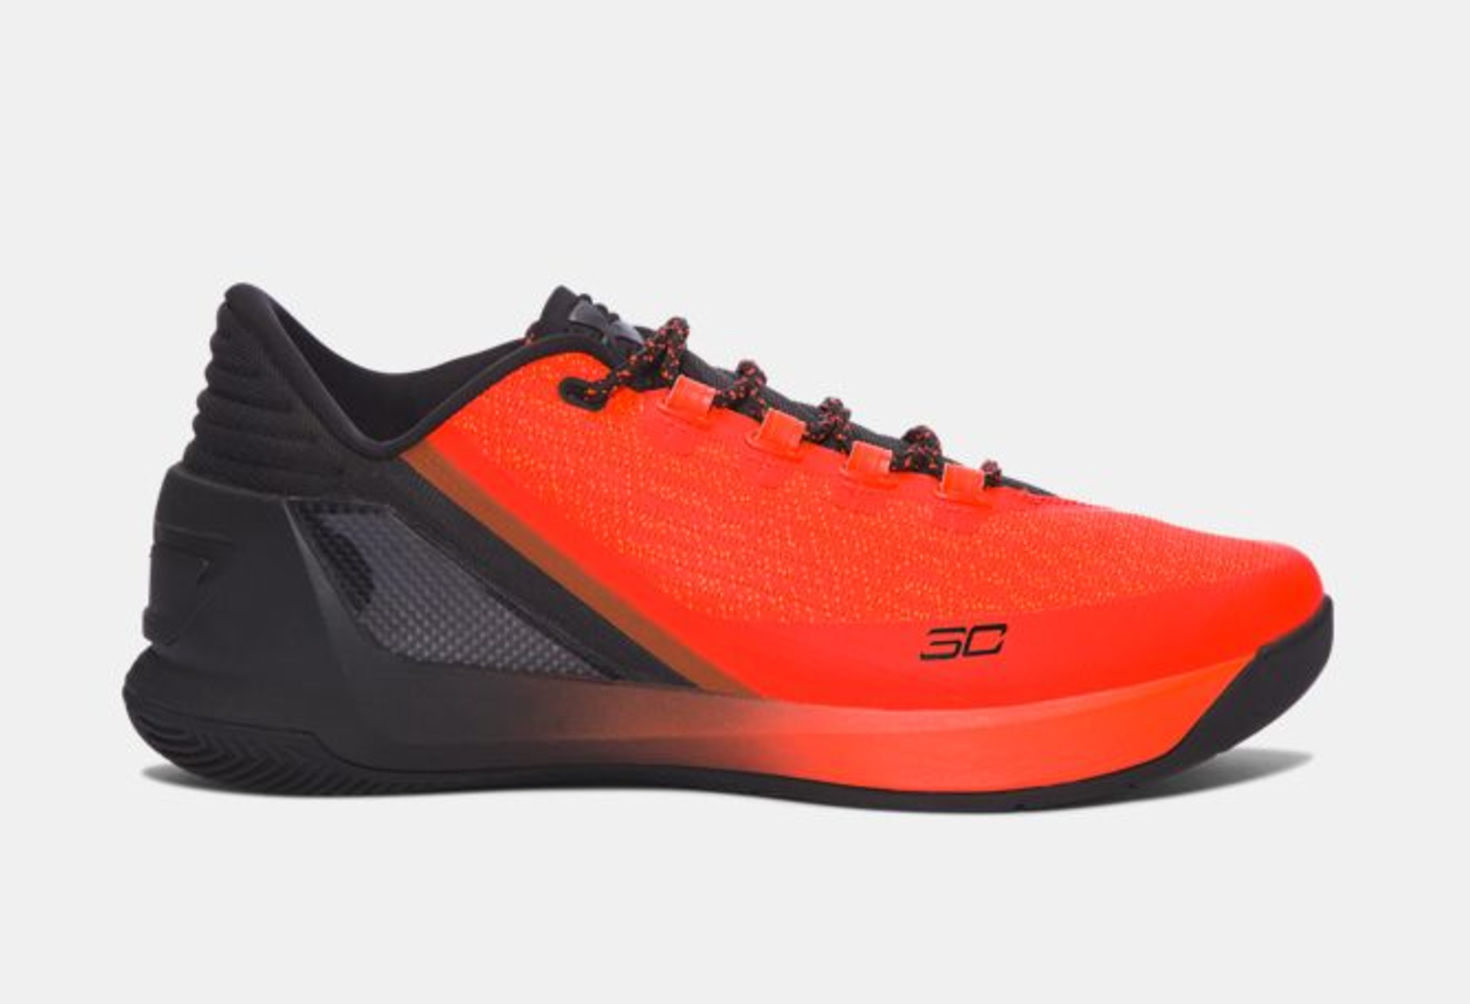 online store a0f65 922b0 Under Armour Introduces the Curry 3 Low 'Phoenix Fire ...